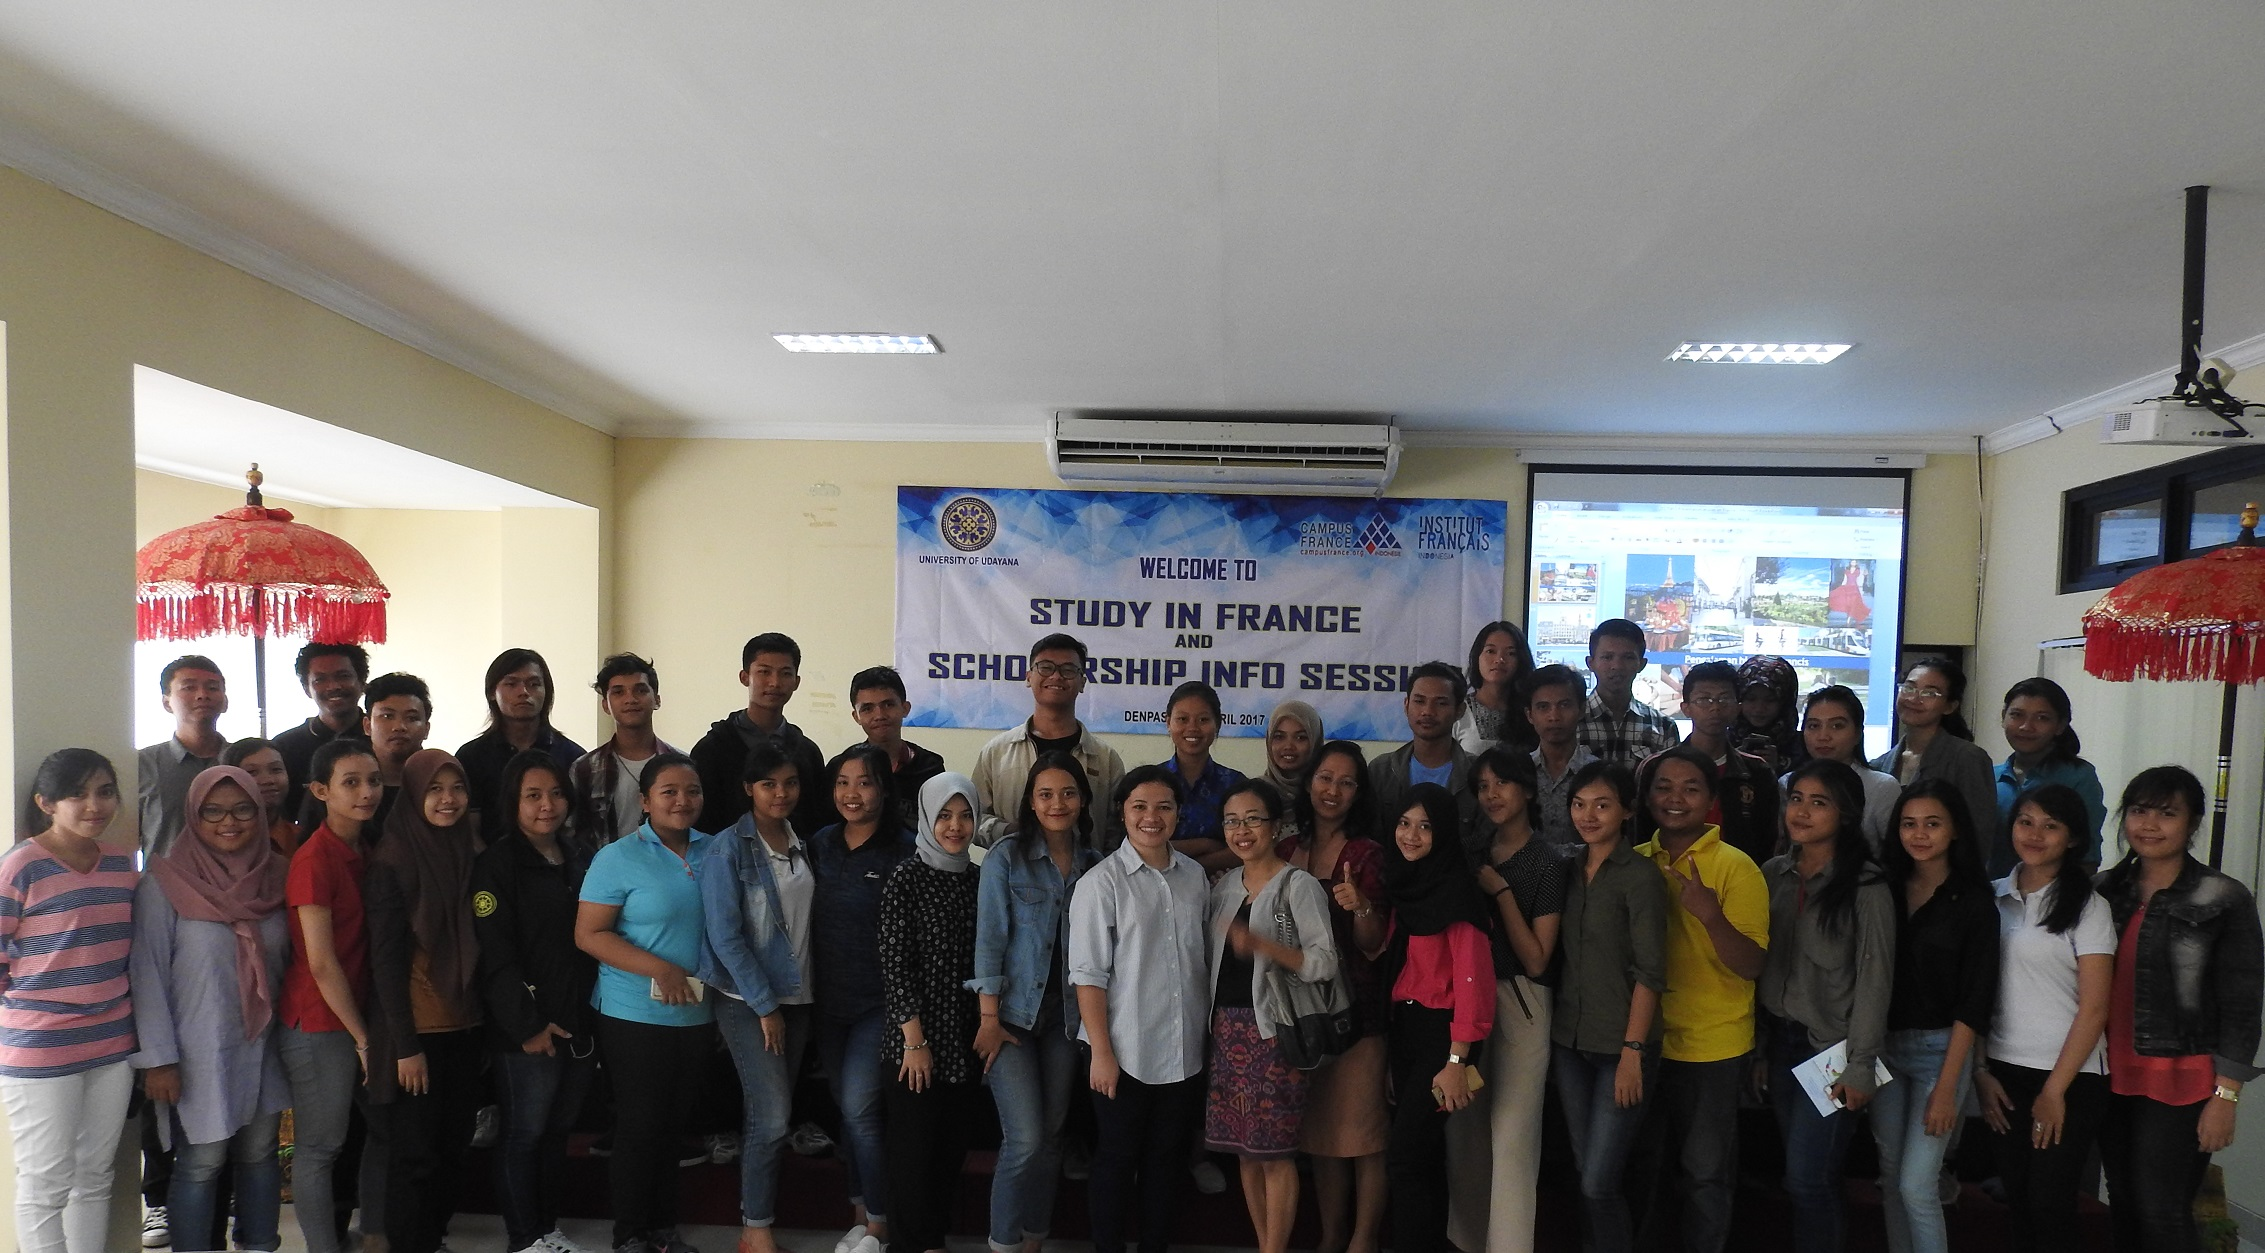 Seminar Study in France and Scholarship Info Session